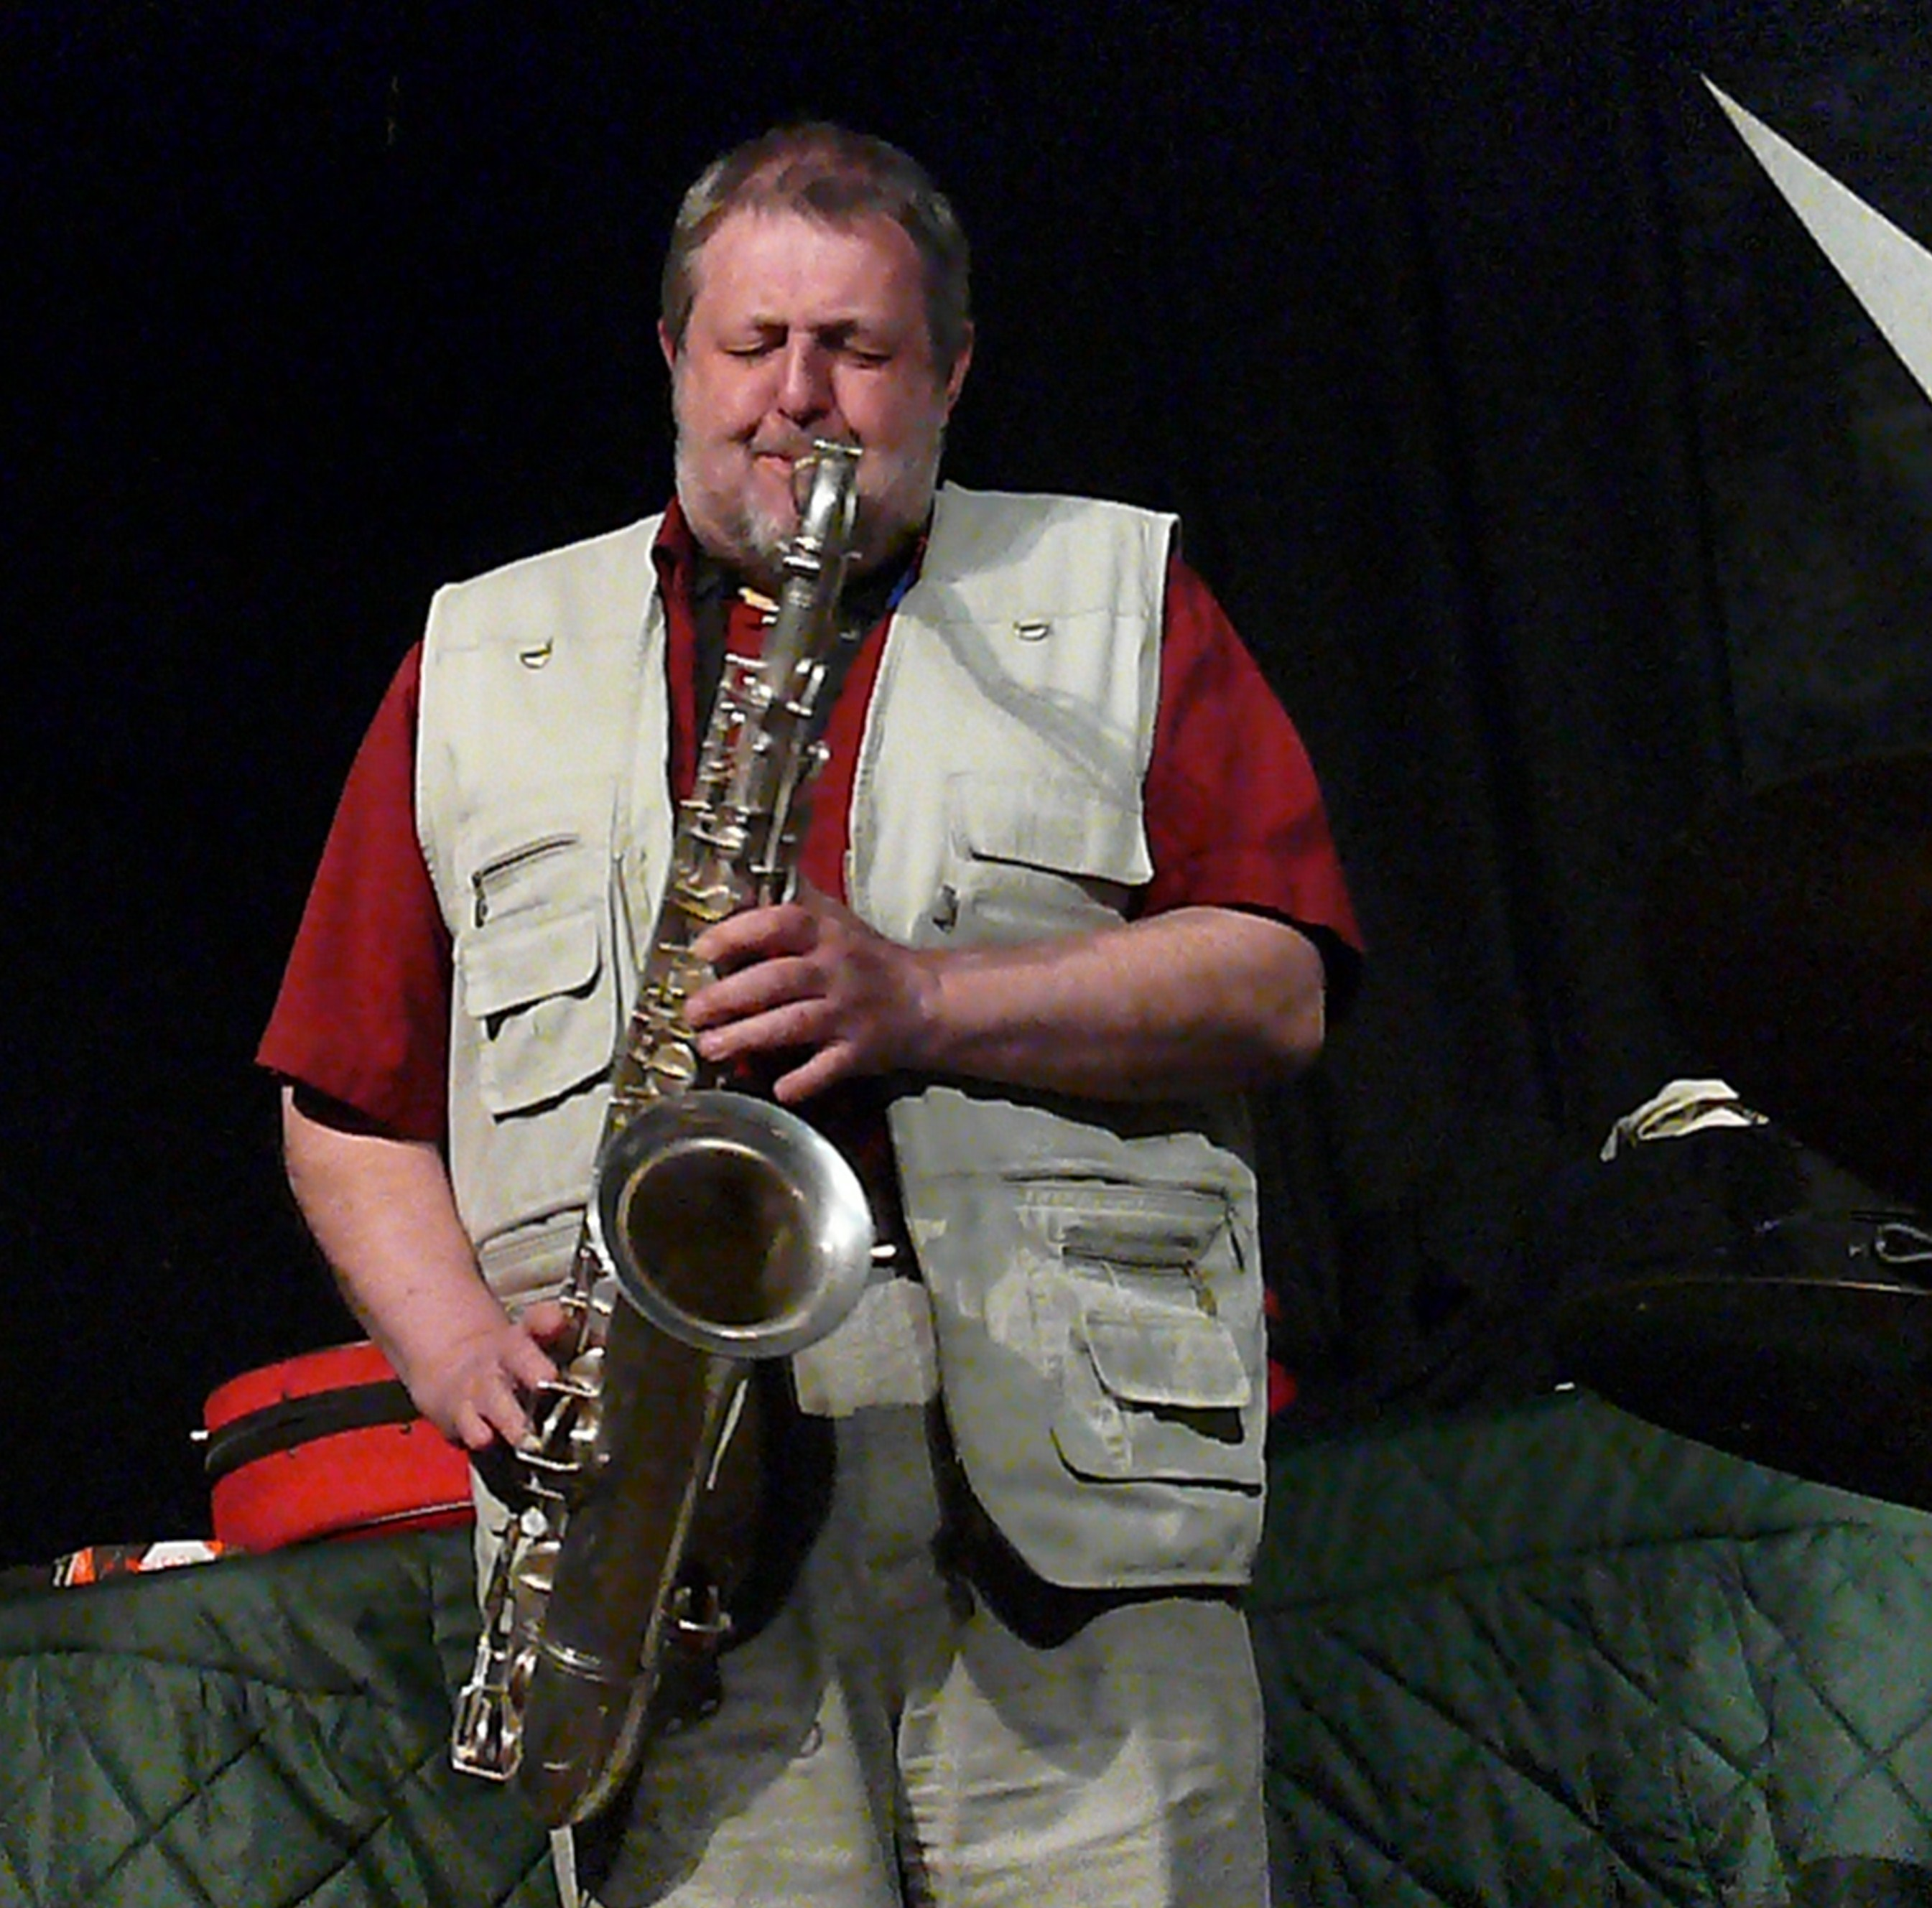 Paul Dunmall at the Vortex, London, February 2010